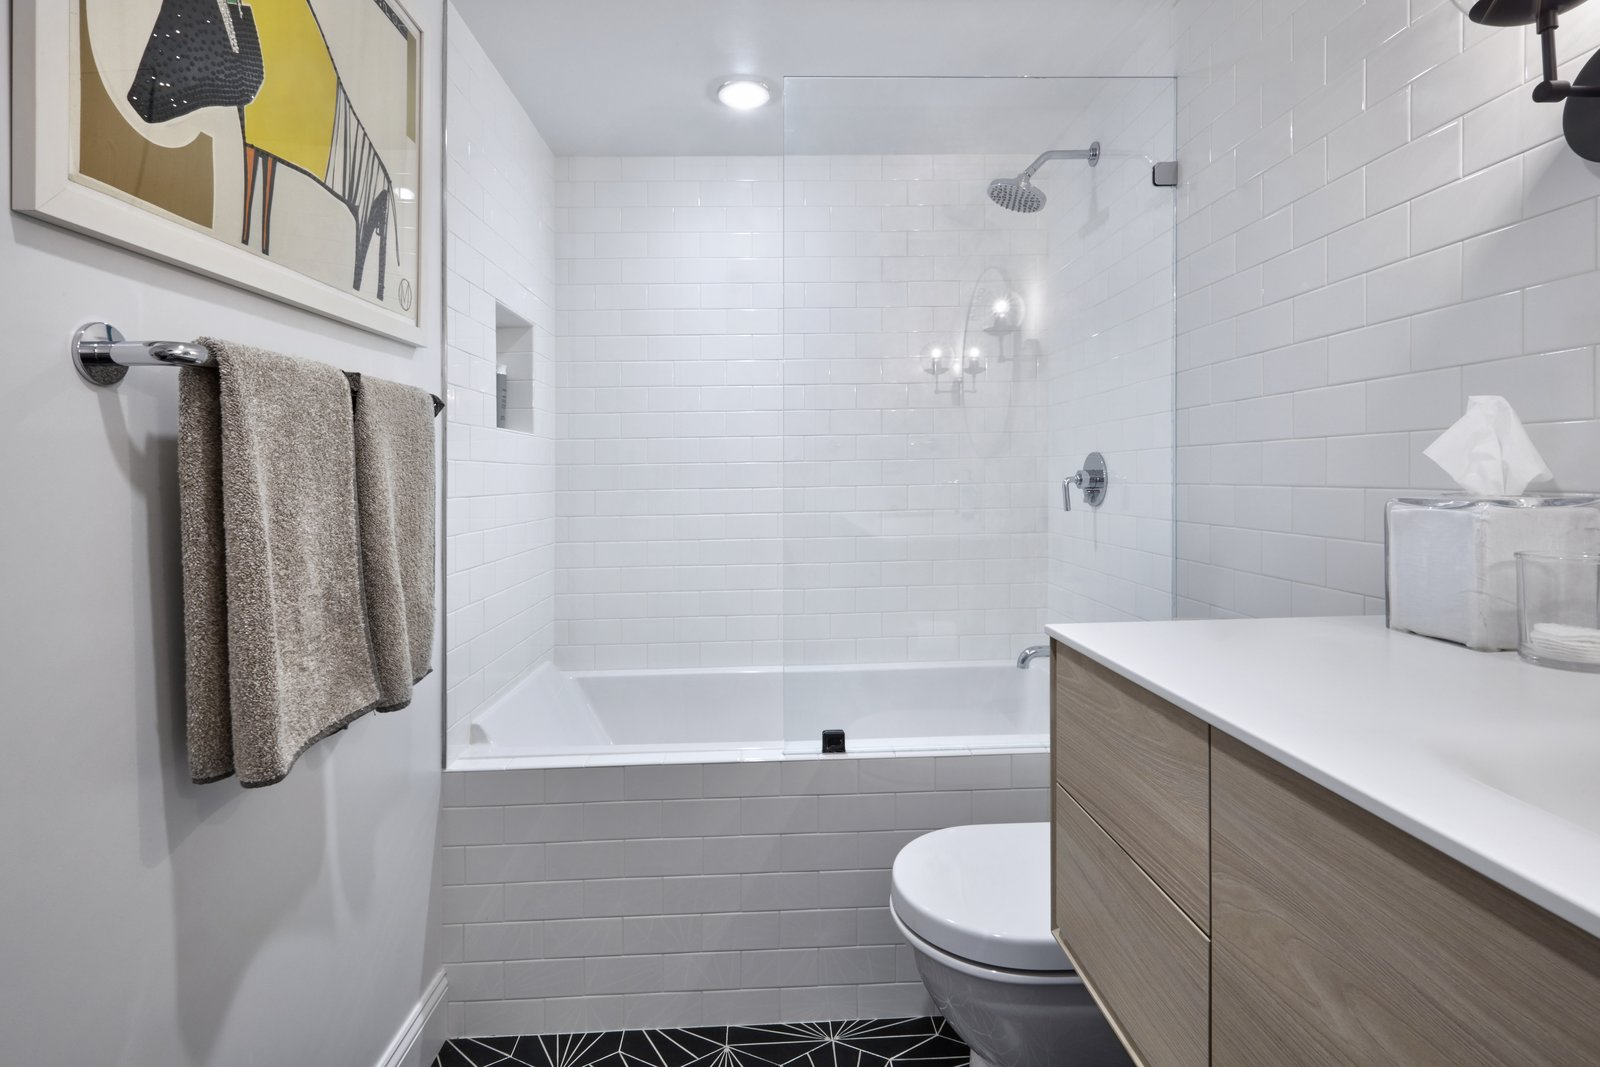 Bath Room Plumbing Accessories by Waterworks Lighting by Schoolhouse Electric  4th Ave./Union Square Apartment